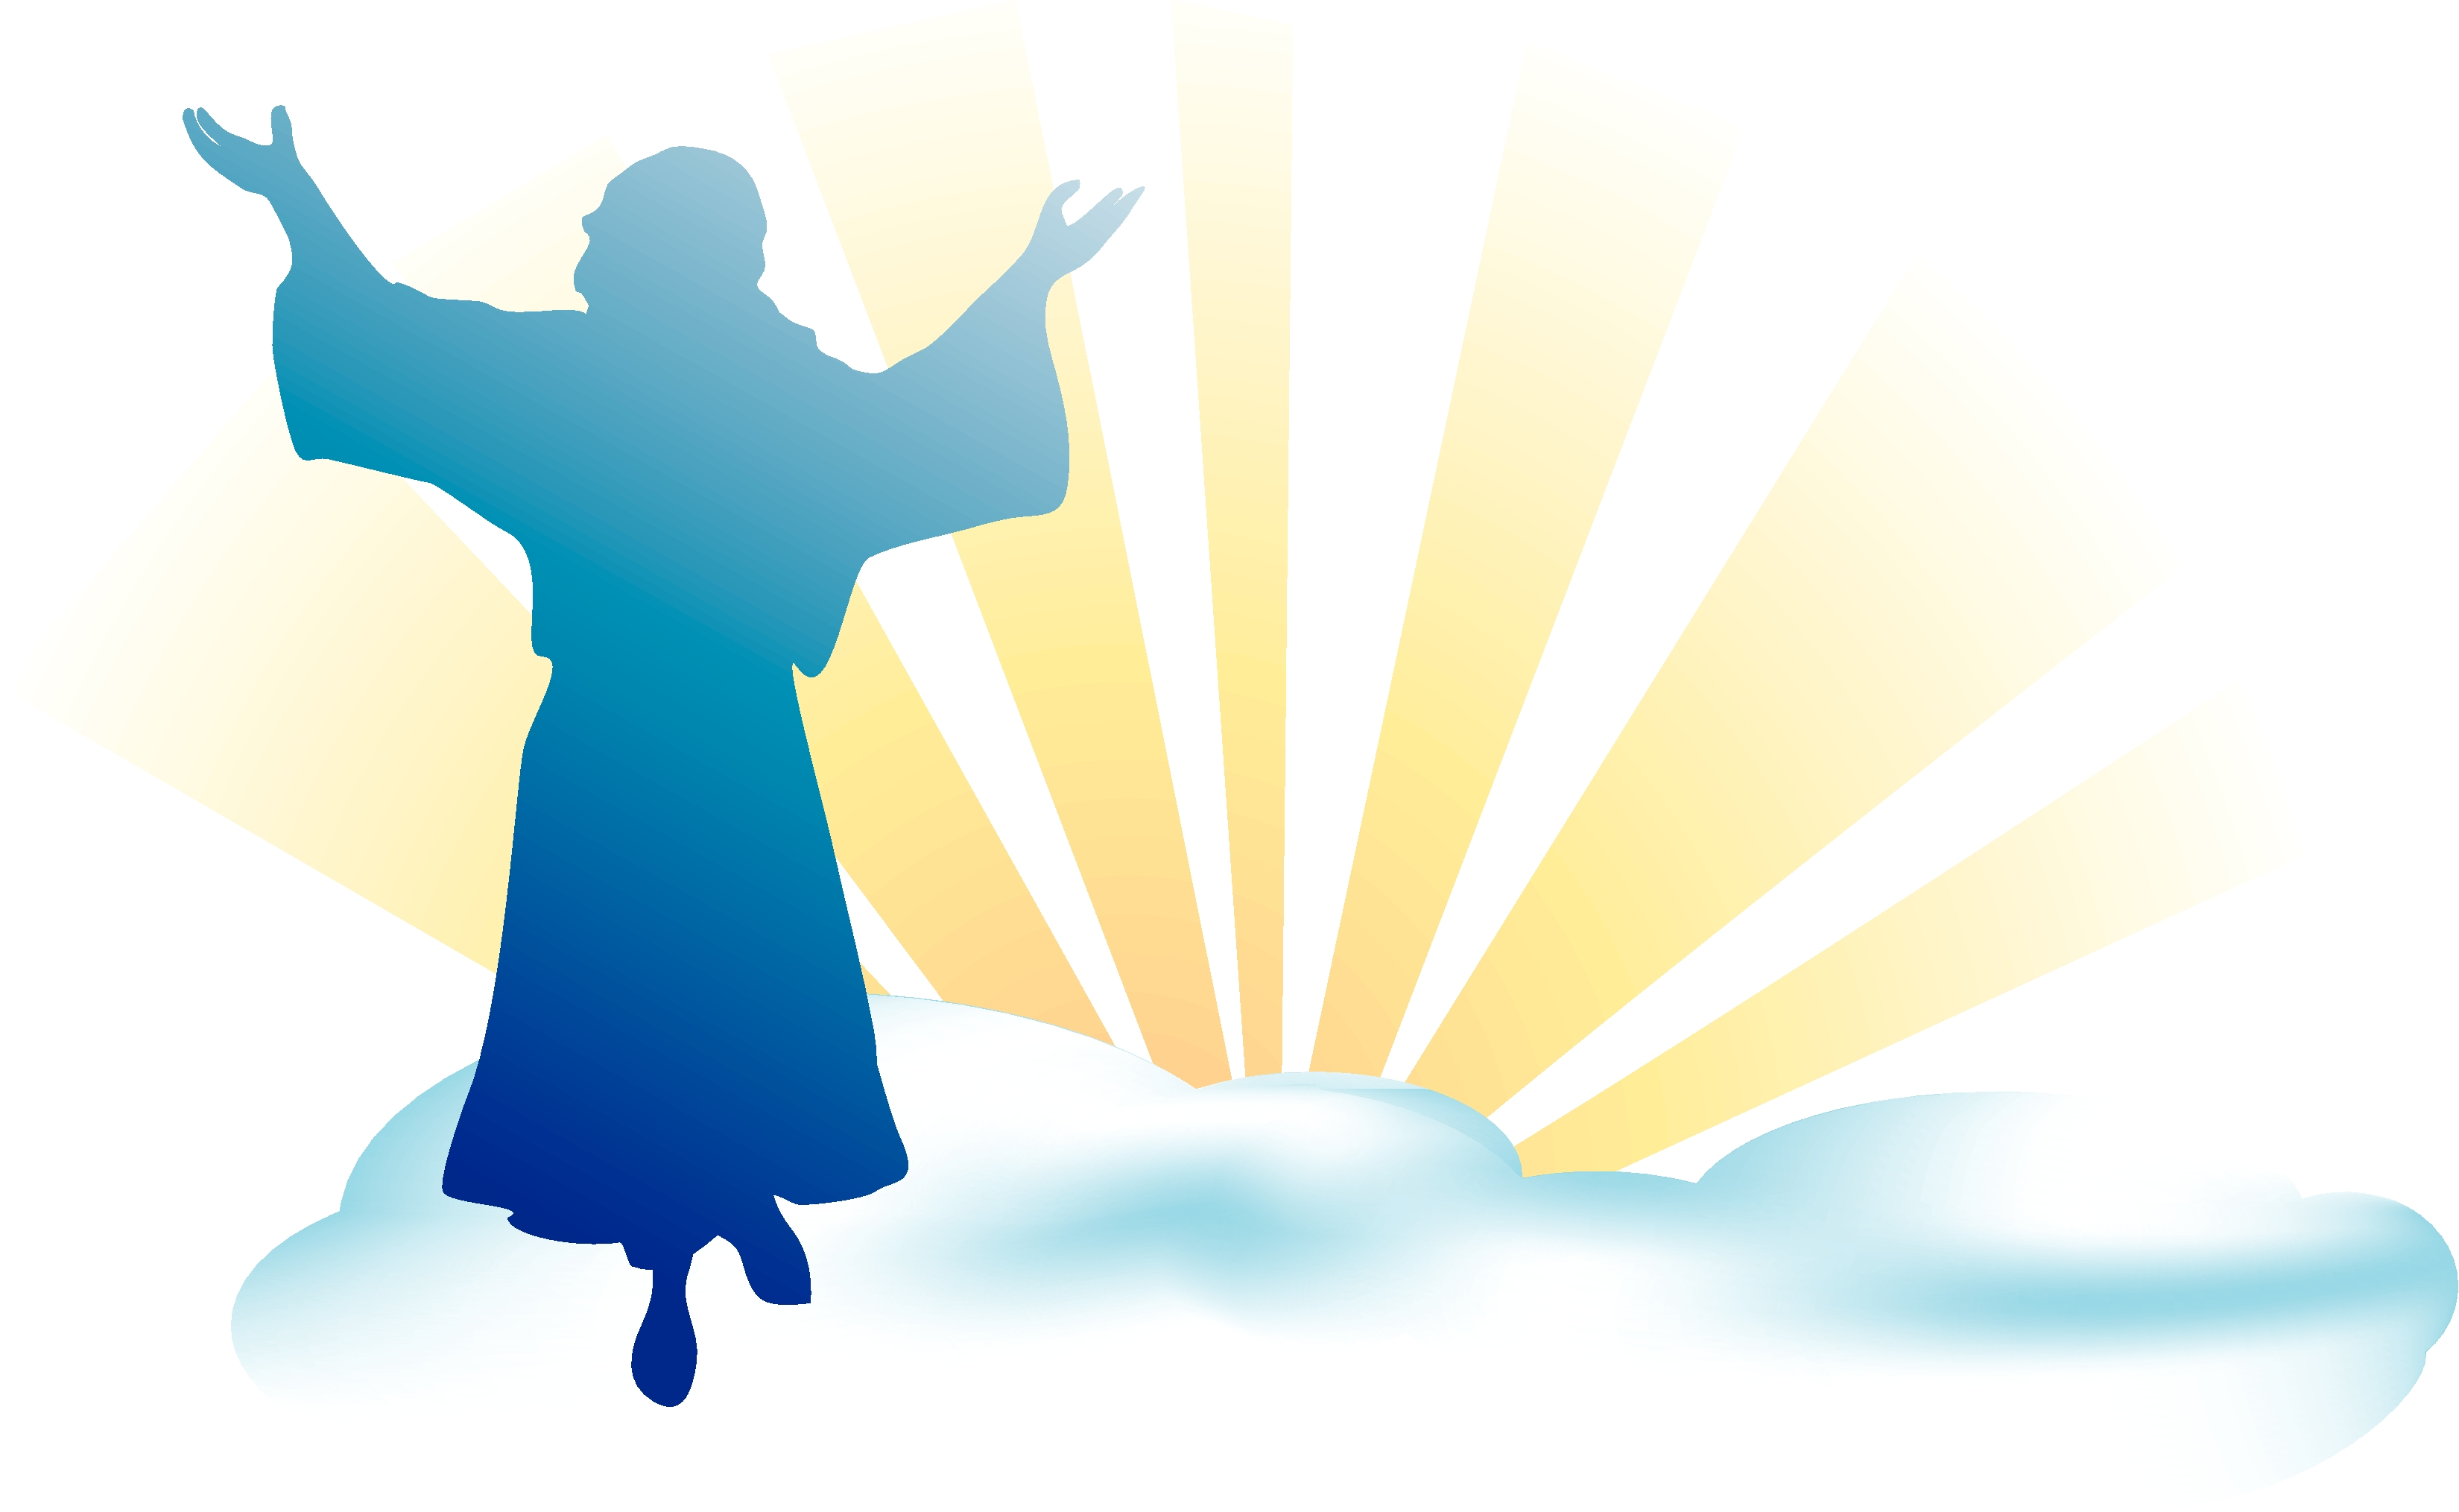 Shout it jesus is lord mountain clipart.